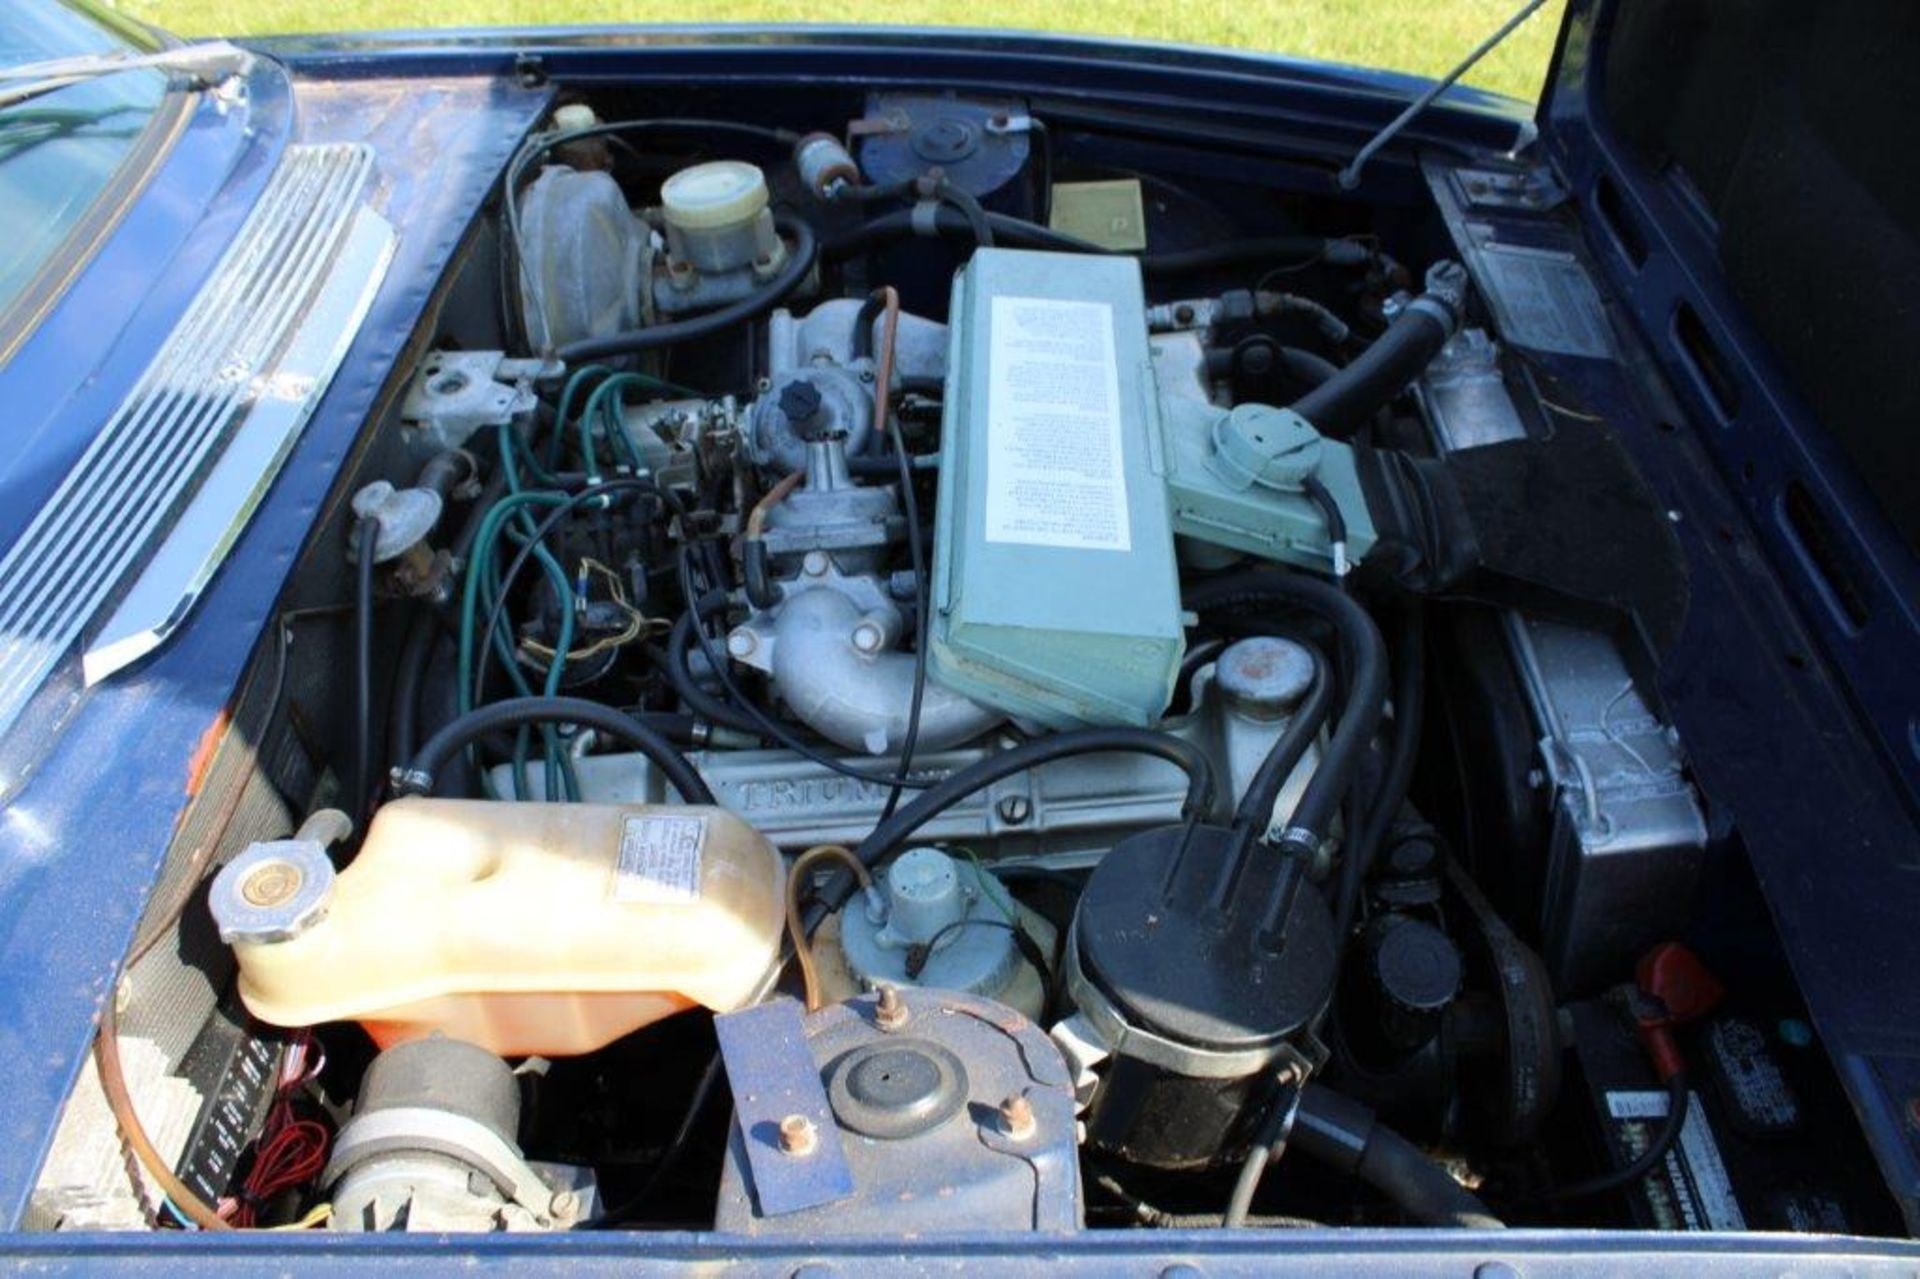 1973 Triumph Stag 3.0 LHD - Image 20 of 28